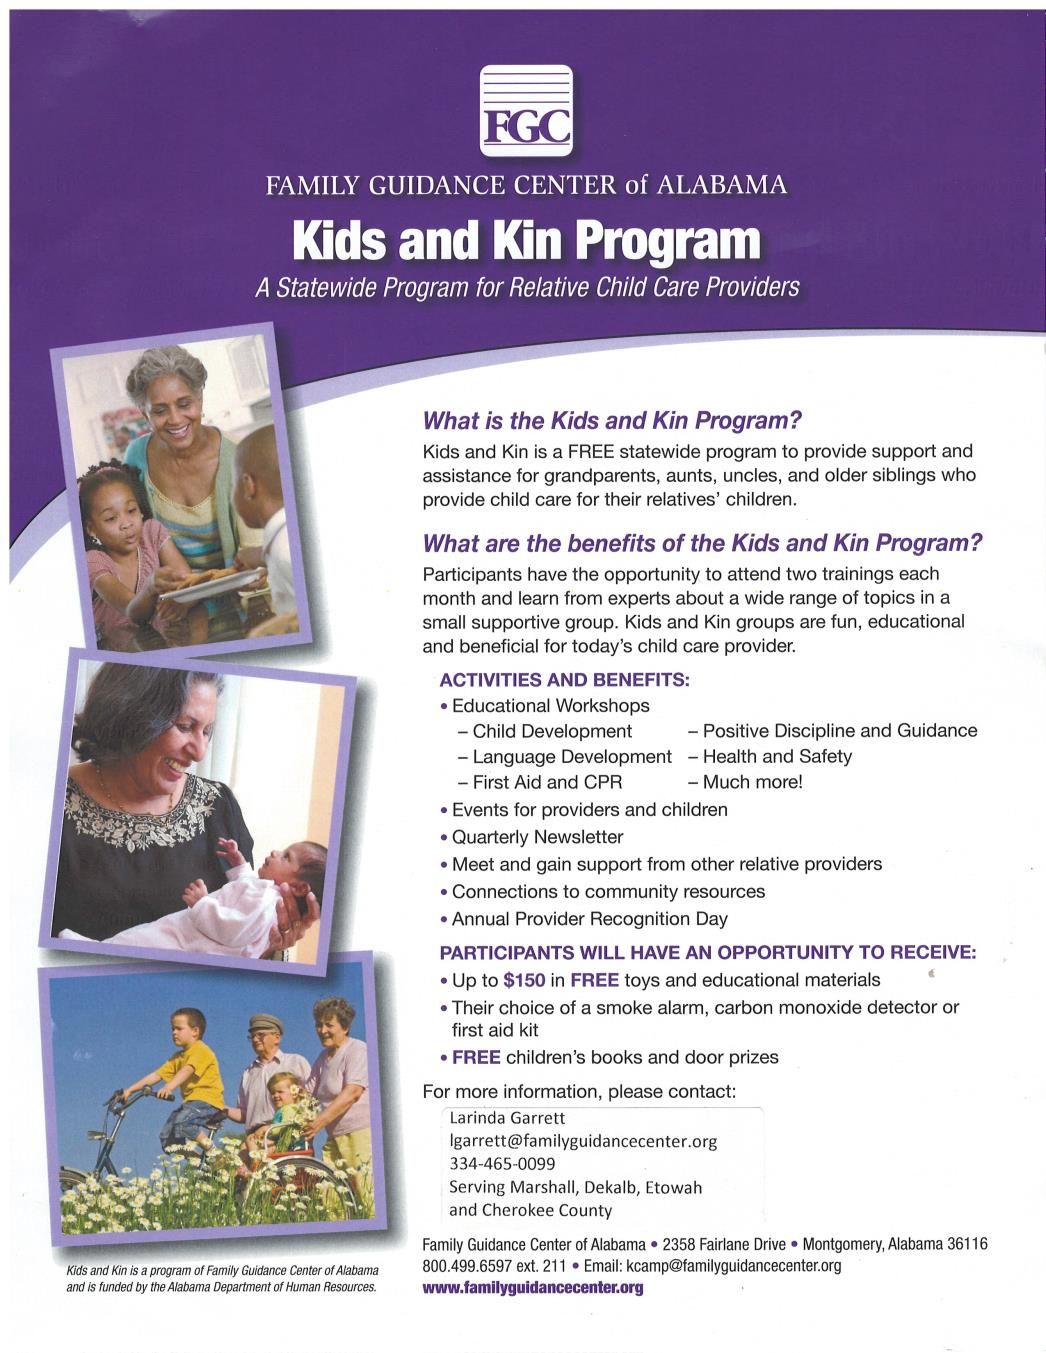 Kids and Kin Program